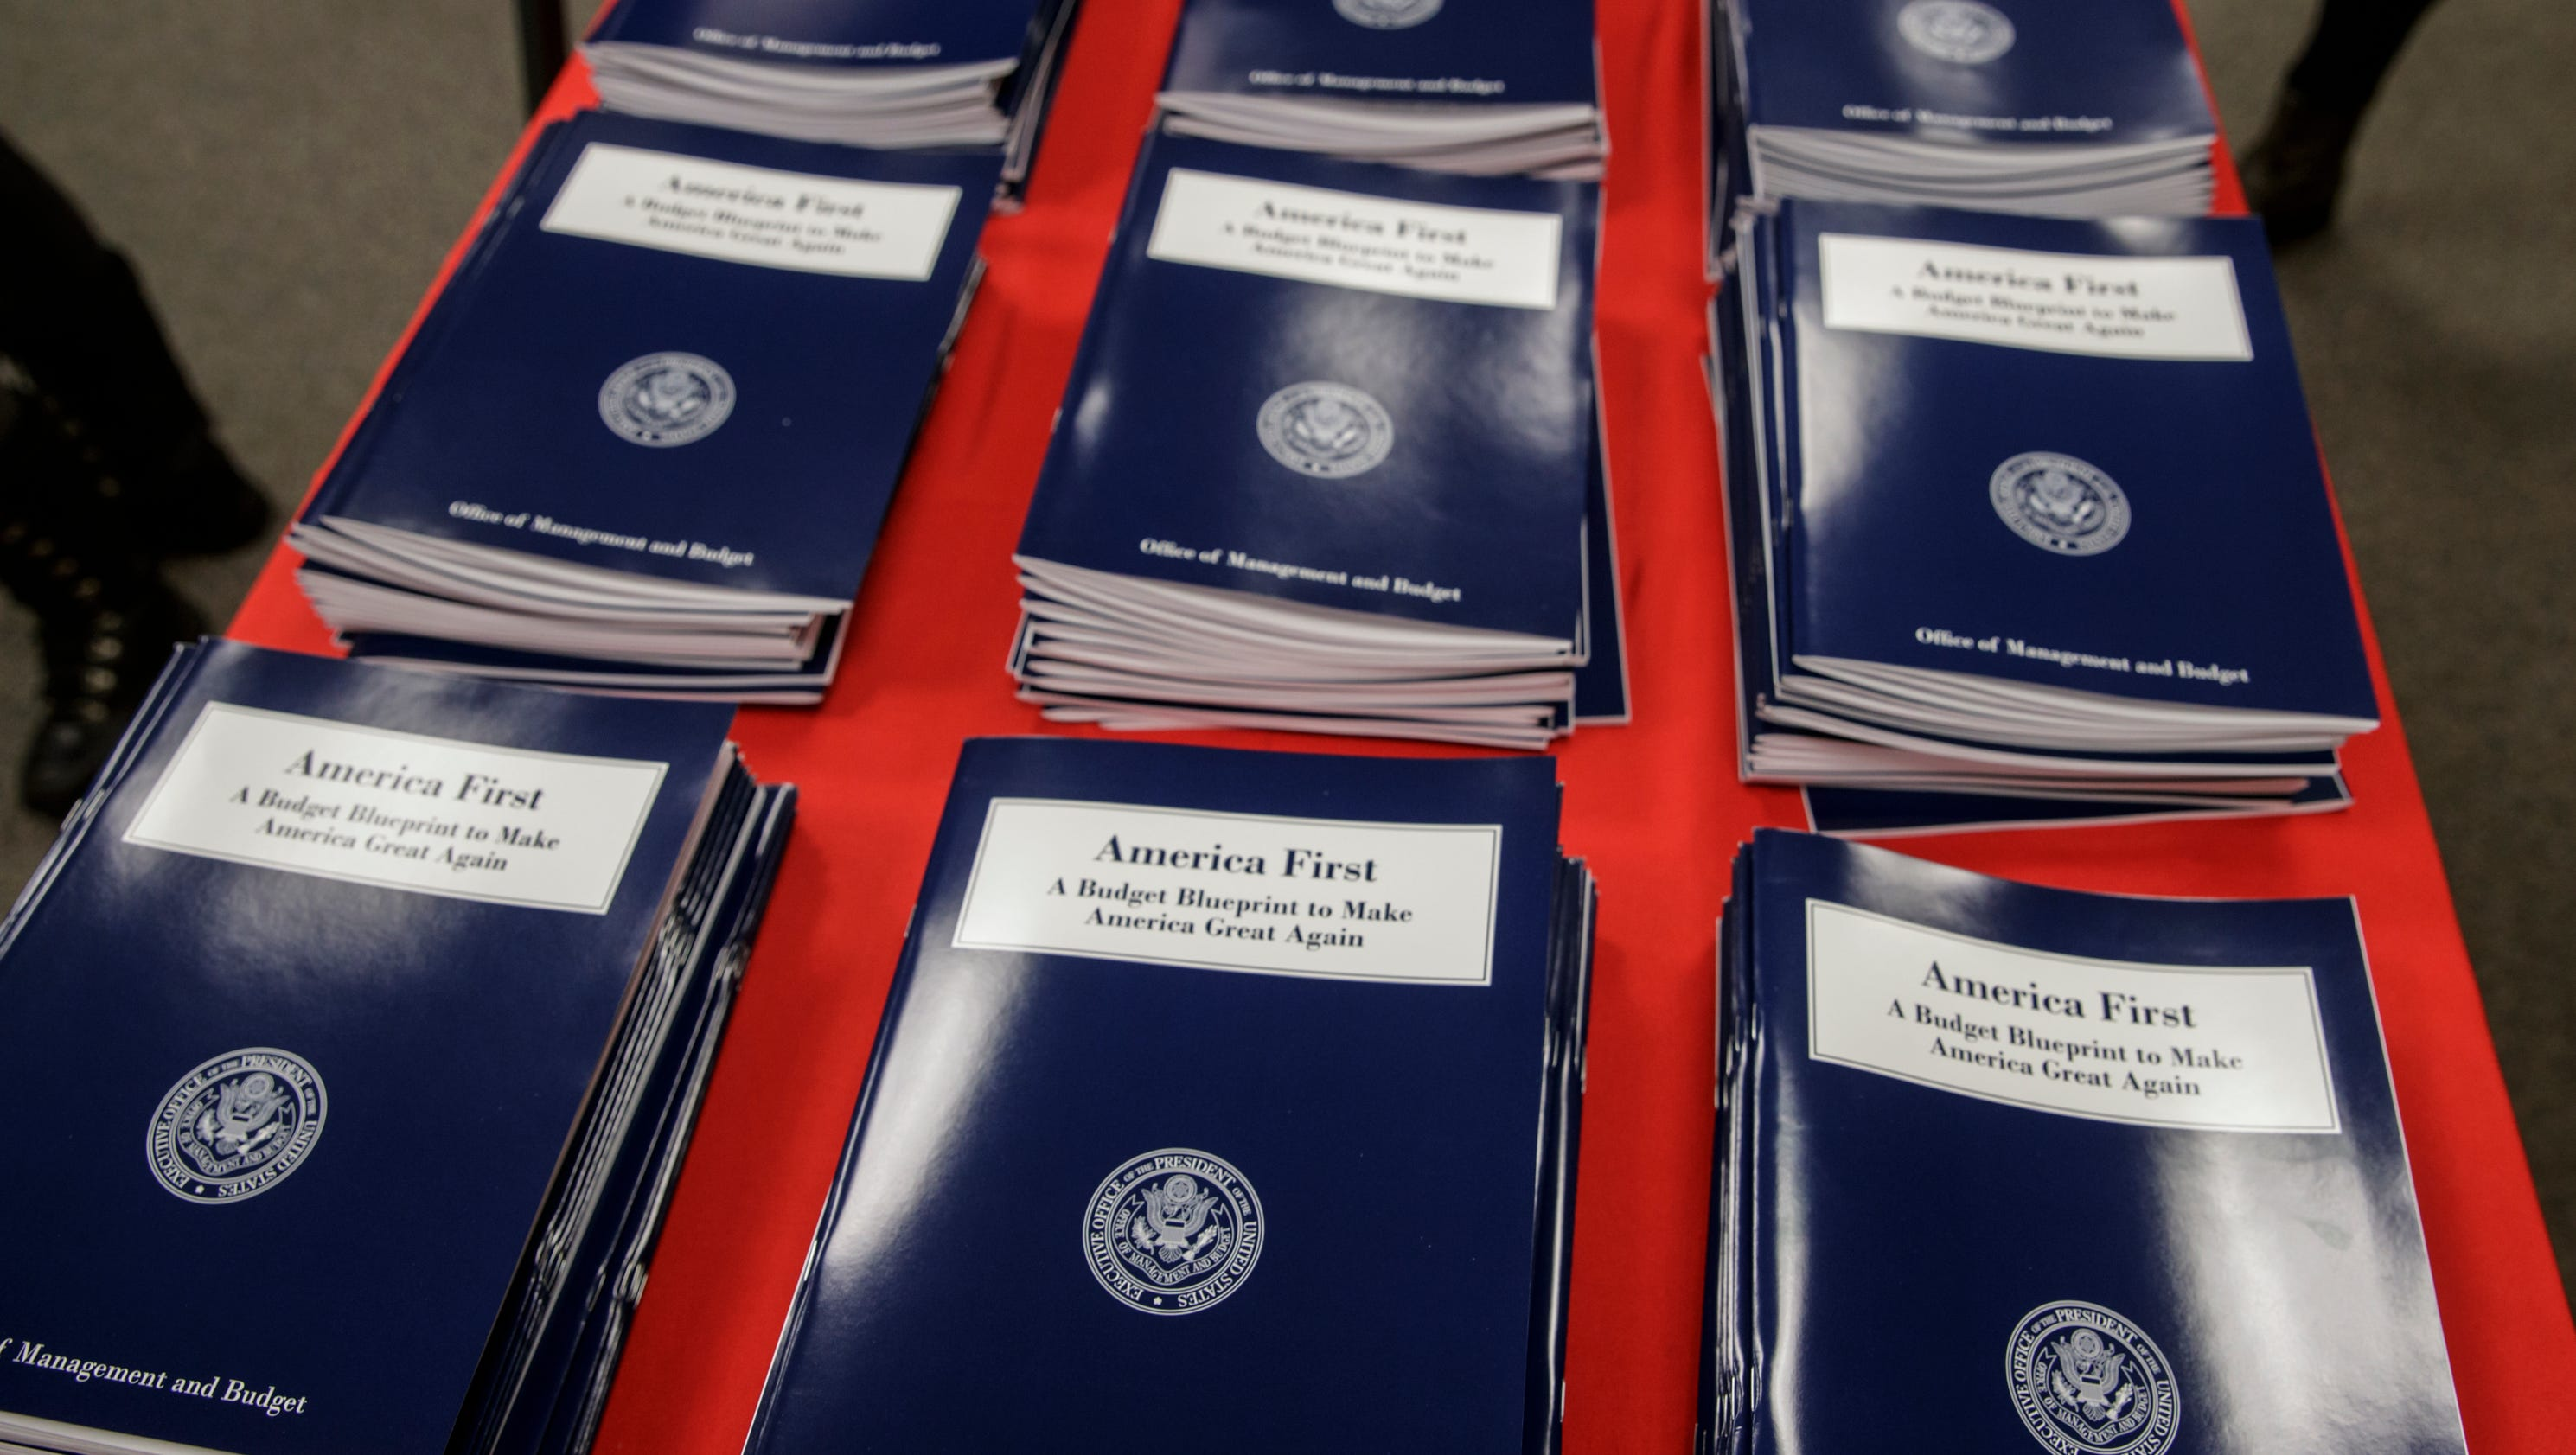 Trumps budget blueprint faces heavy opposition malvernweather Choice Image